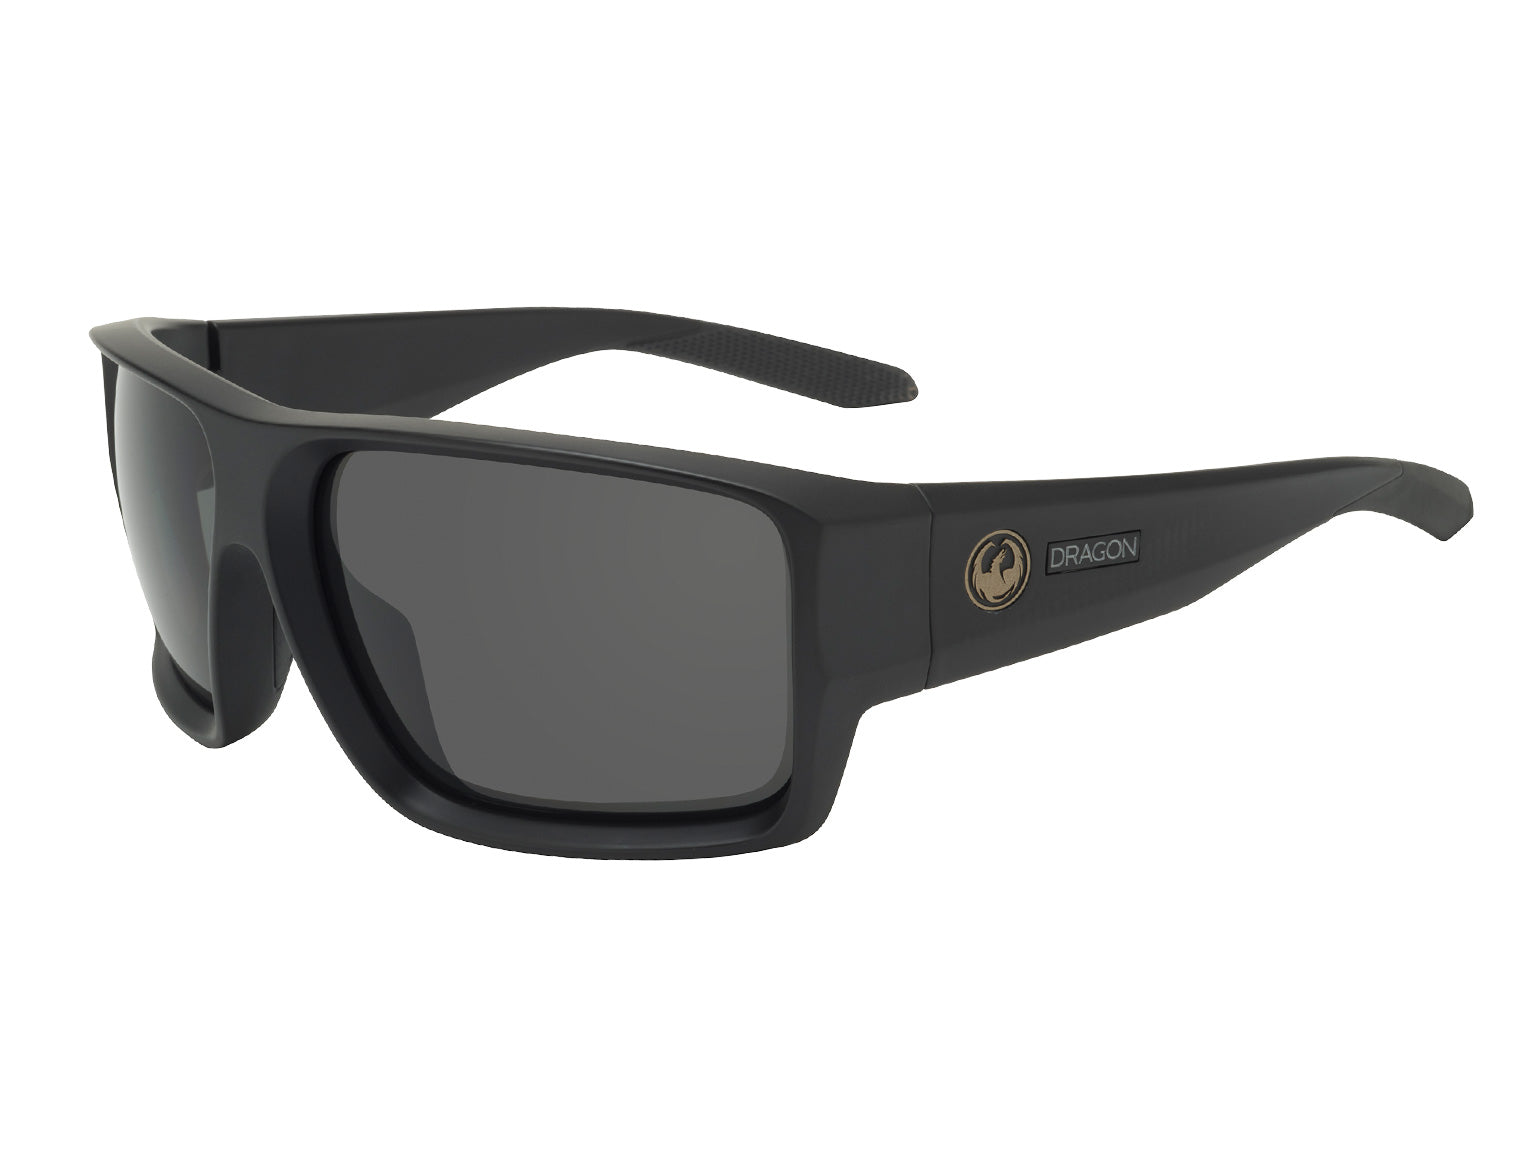 FREED - Matte Black with Polarized Lumalens Smoke Lens